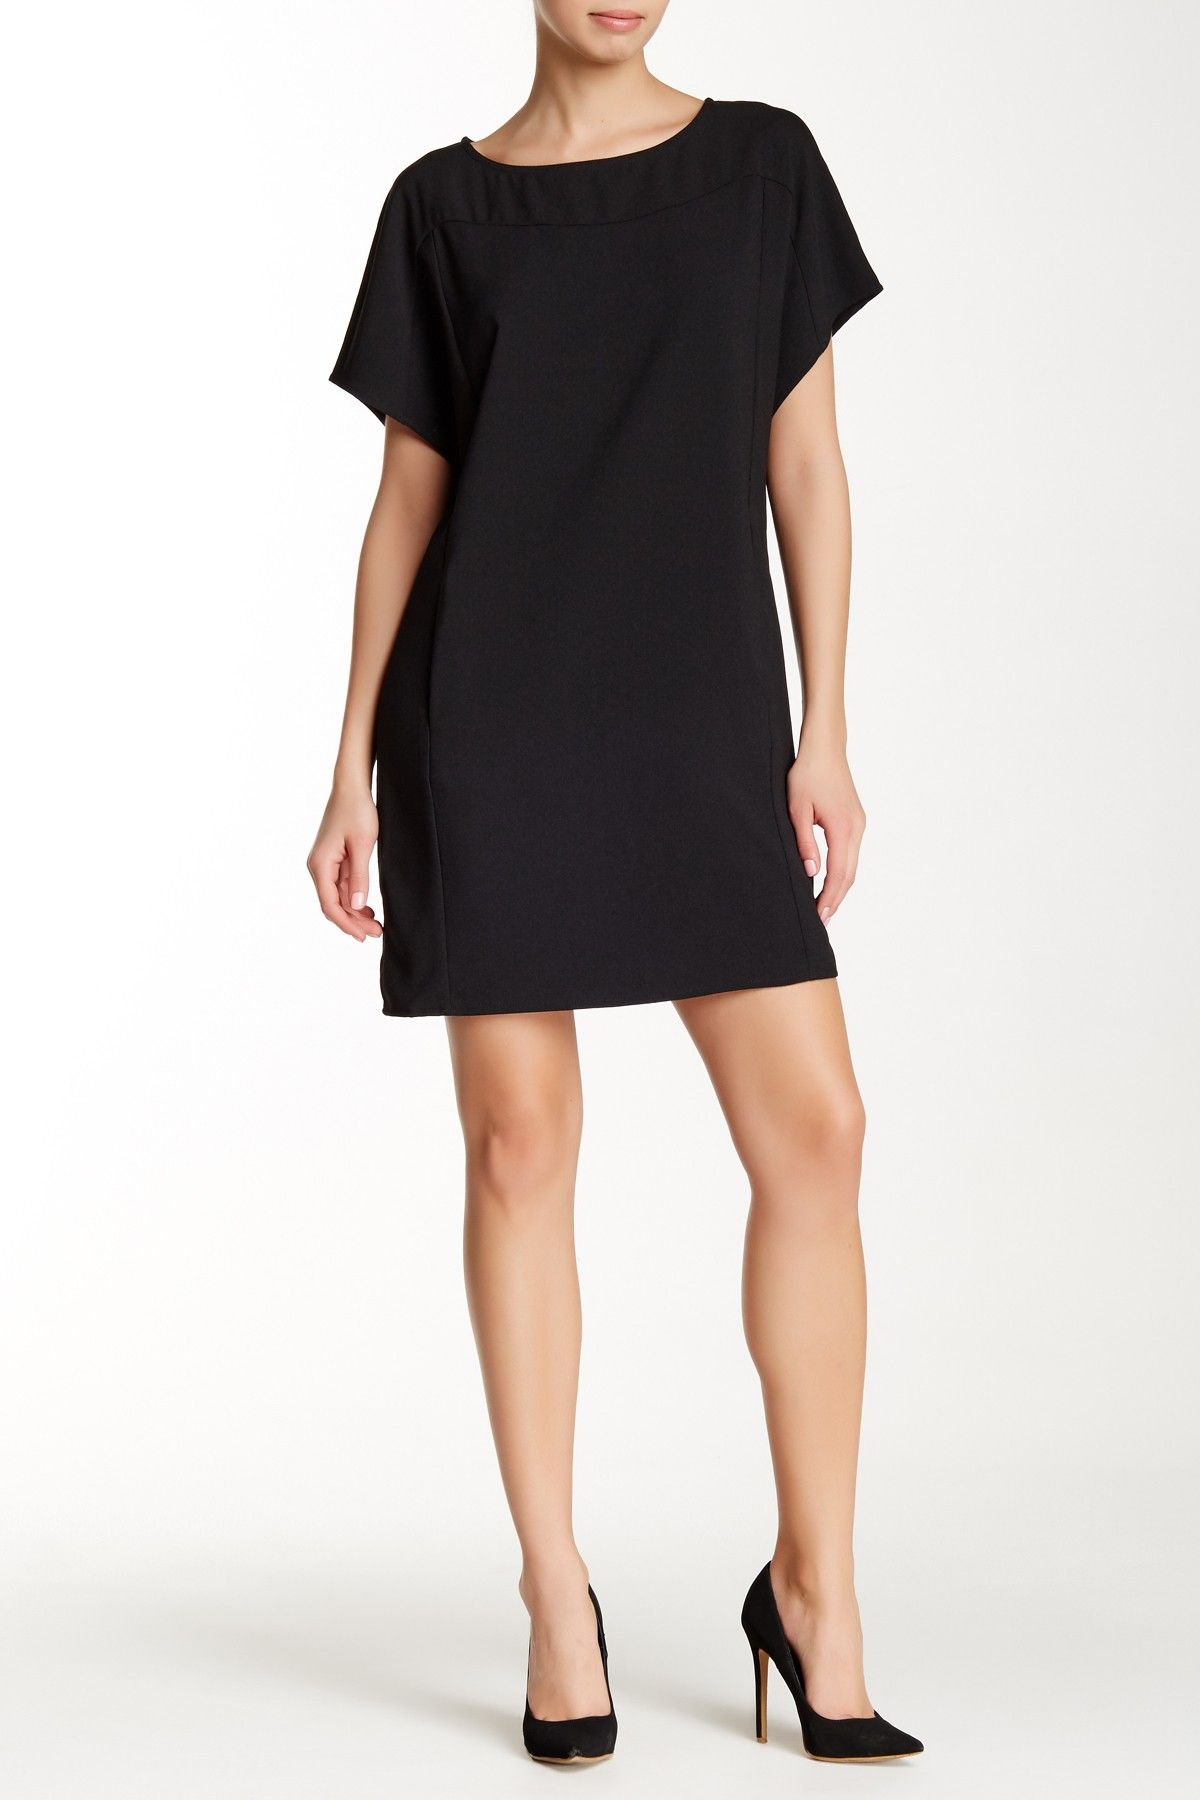 Crepe Dolman Sleeve Dress by Lilla P on @nordstrom_rack